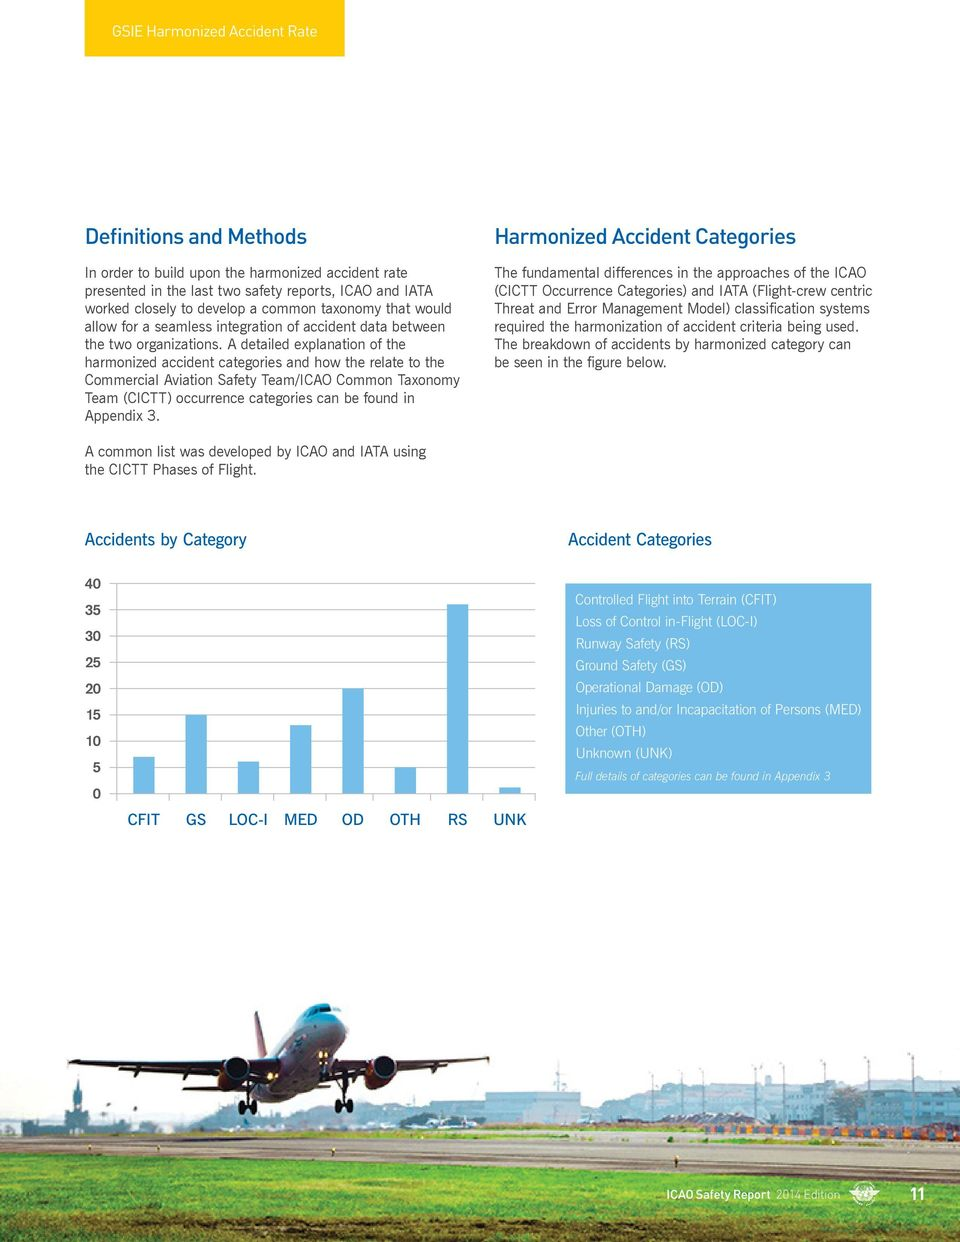 A detailed explanation of the harmonized accident categories and how the relate to the Commercial Aviation Safety Team/ICAO Common Taxonomy Team (CICTT) occurrence categories can be found in Appendix